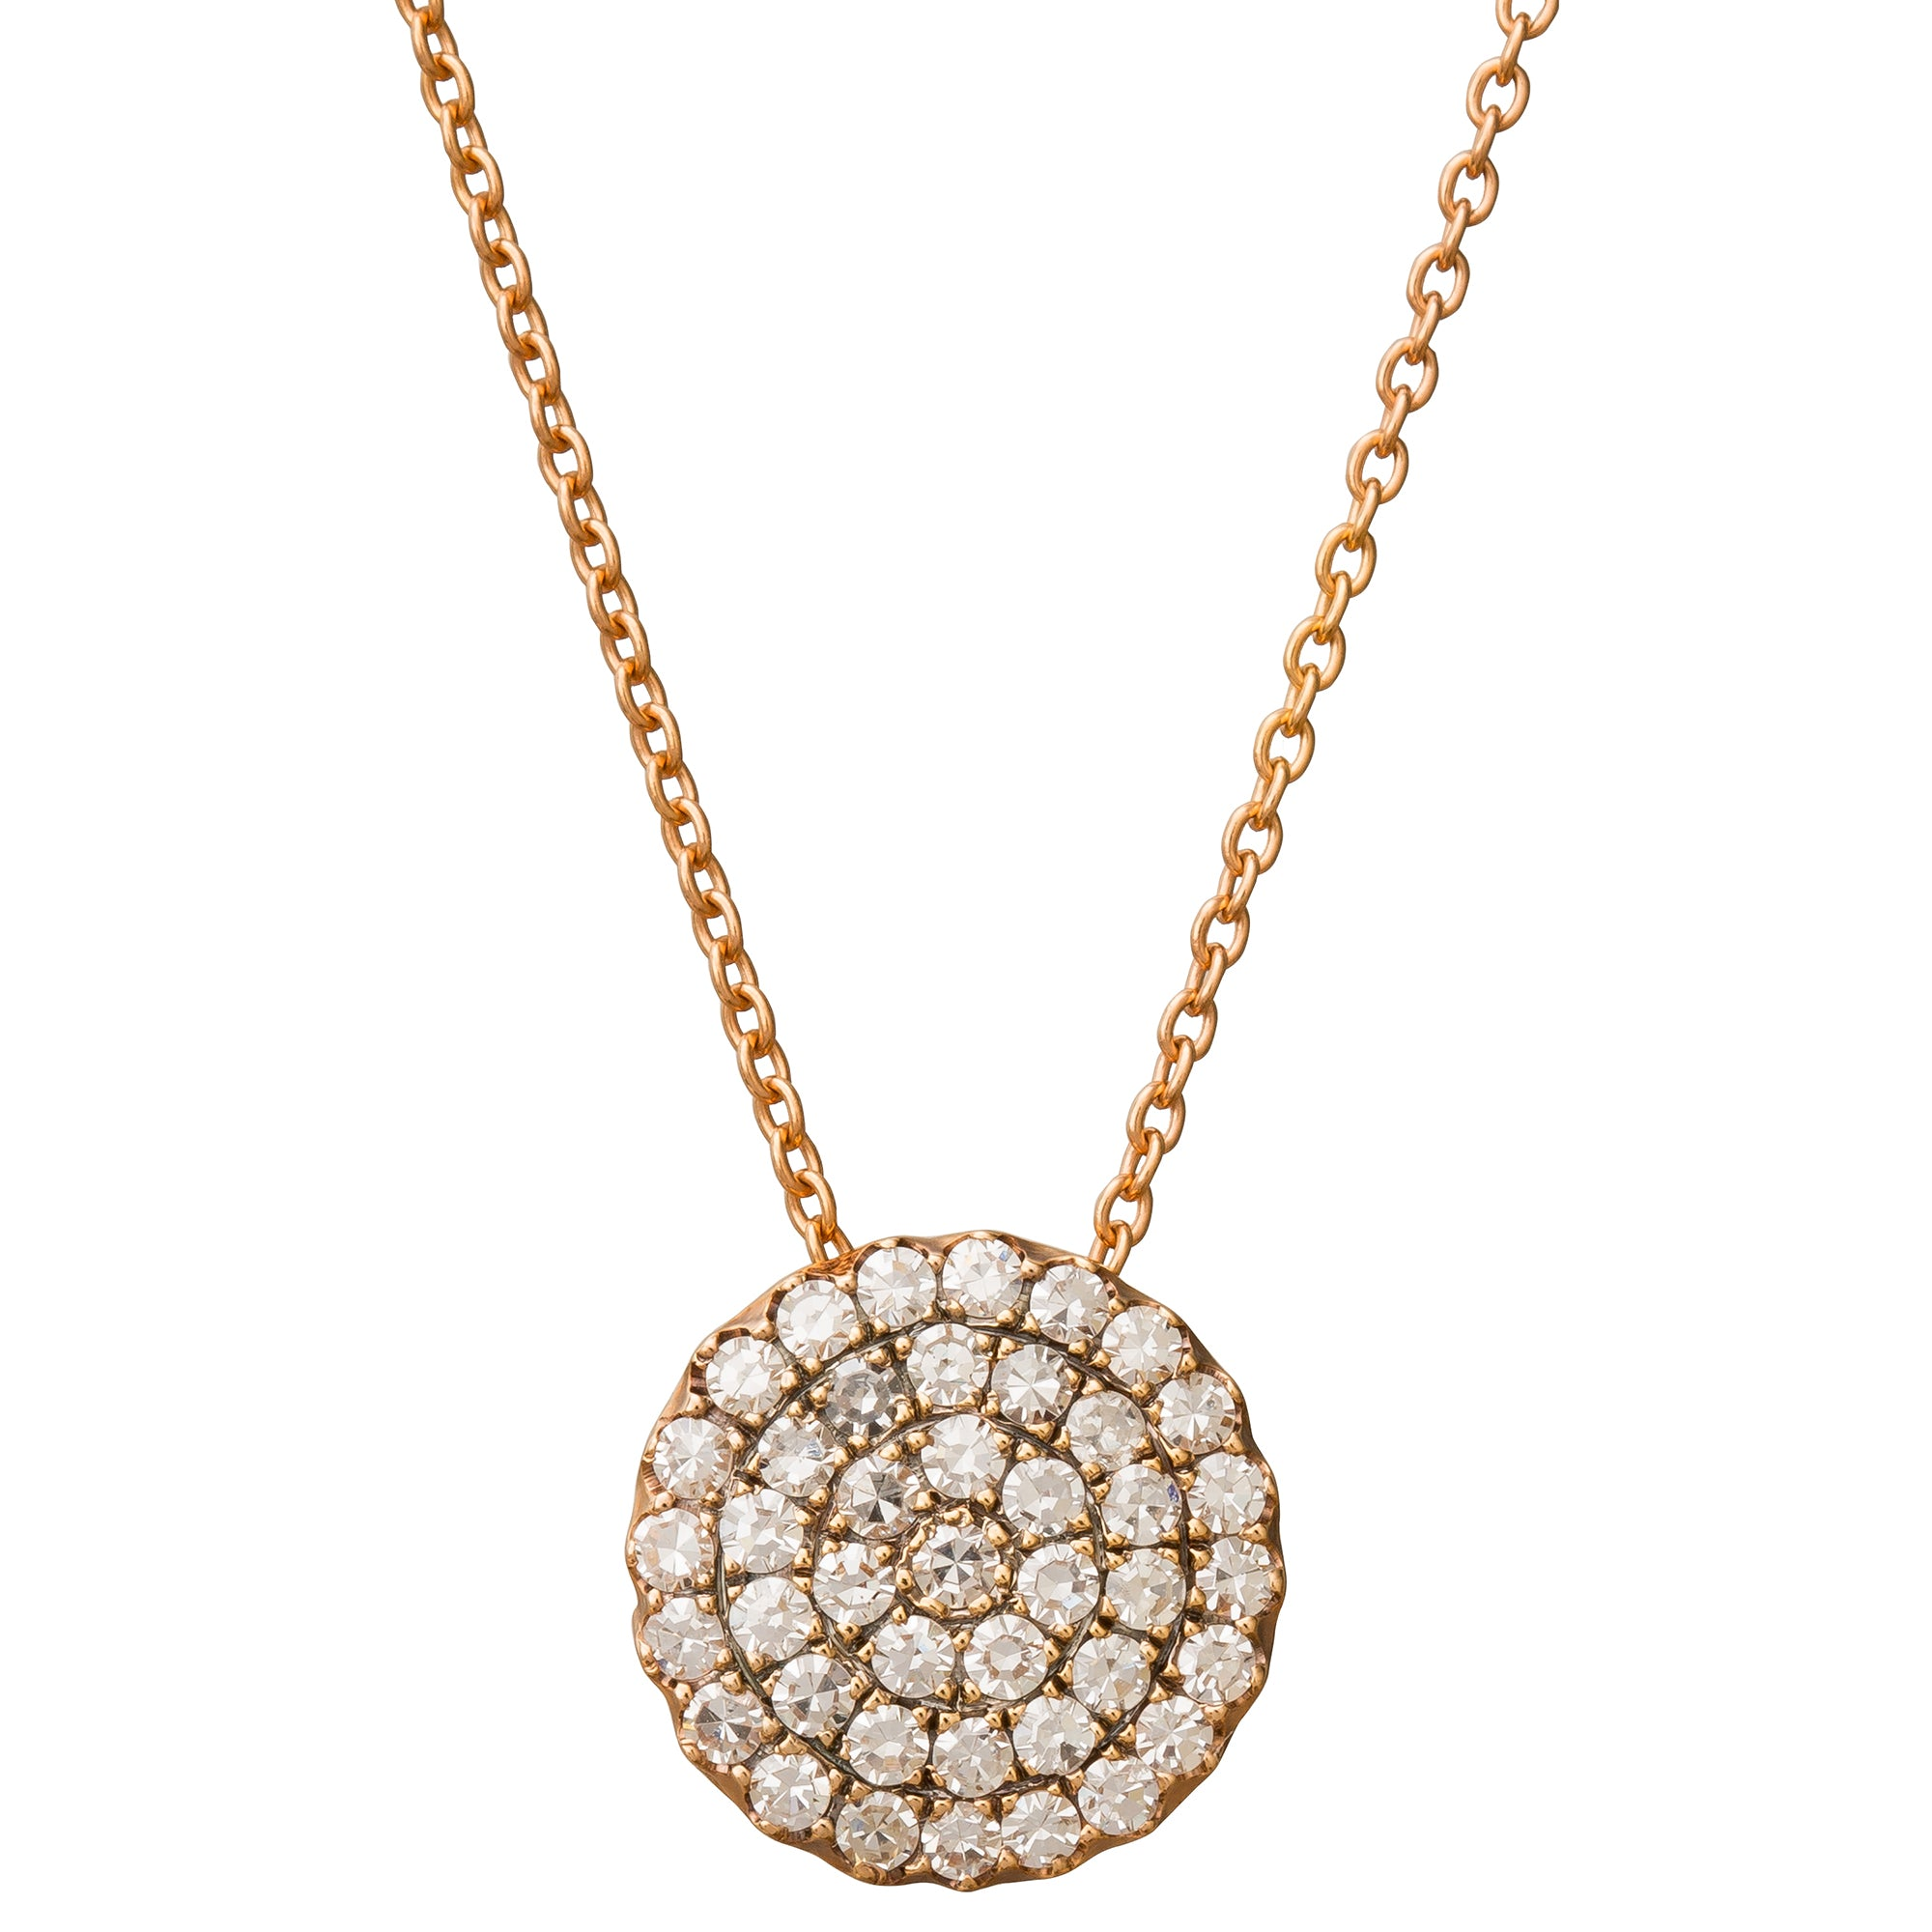 White Diamond Beirut Pendant Necklace - Selim Mouzannar - Necklace | Broken English Jewelry